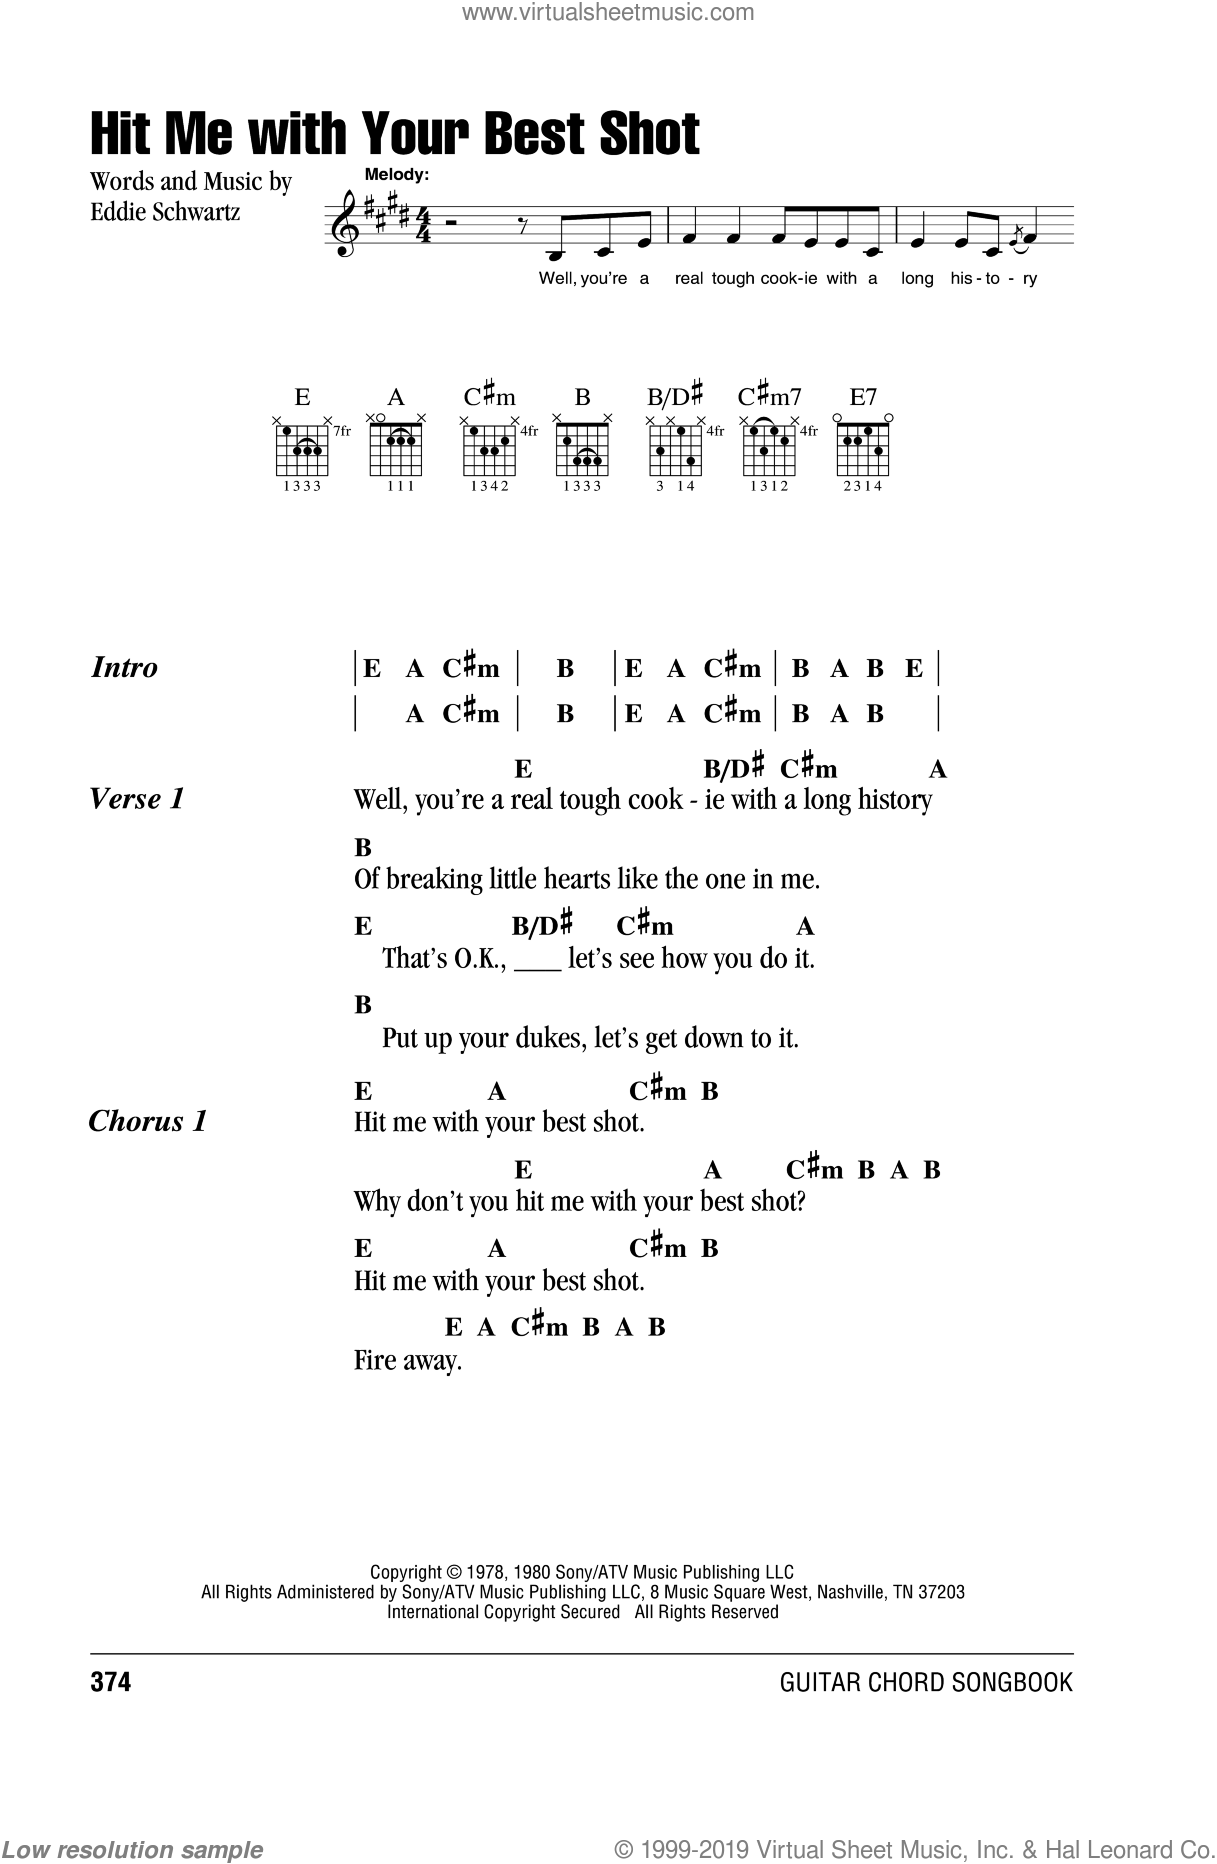 Hit Me With Your Best Shot sheet music for guitar (chords) by Pat Benatar and Eddie Schwartz, intermediate guitar (chords). Score Image Preview.